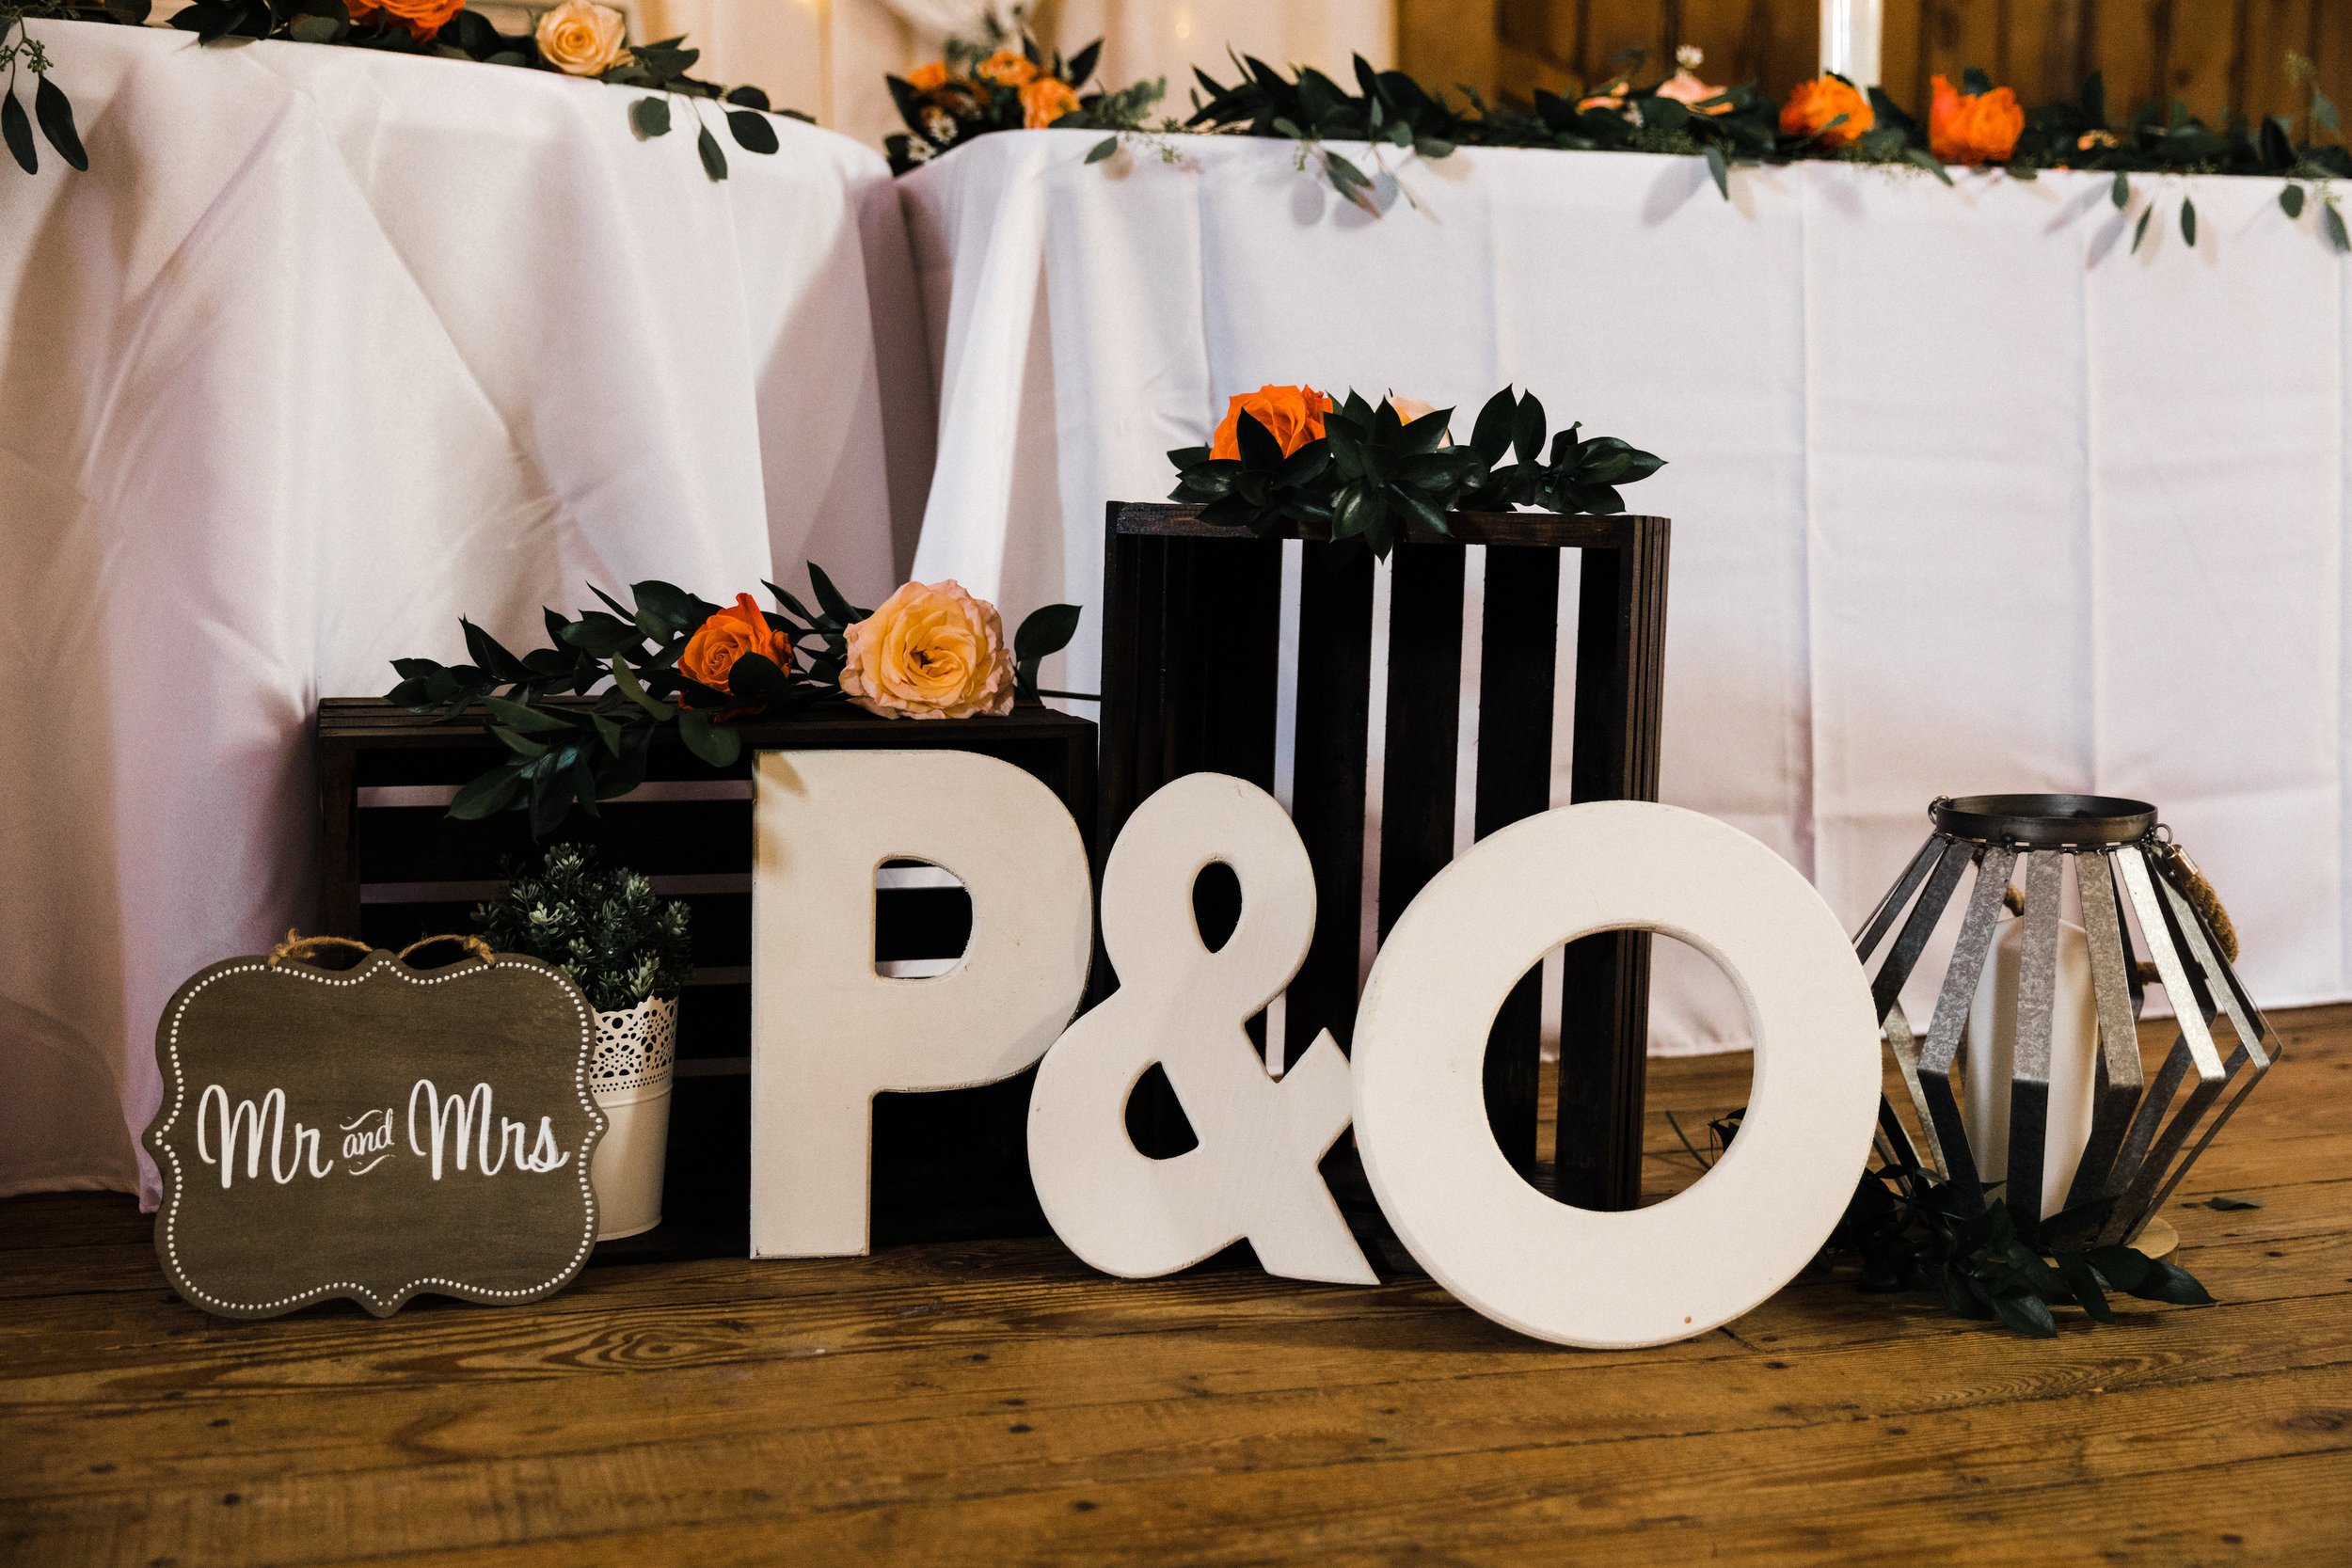 Phil + Olivia Reception-64.jpg